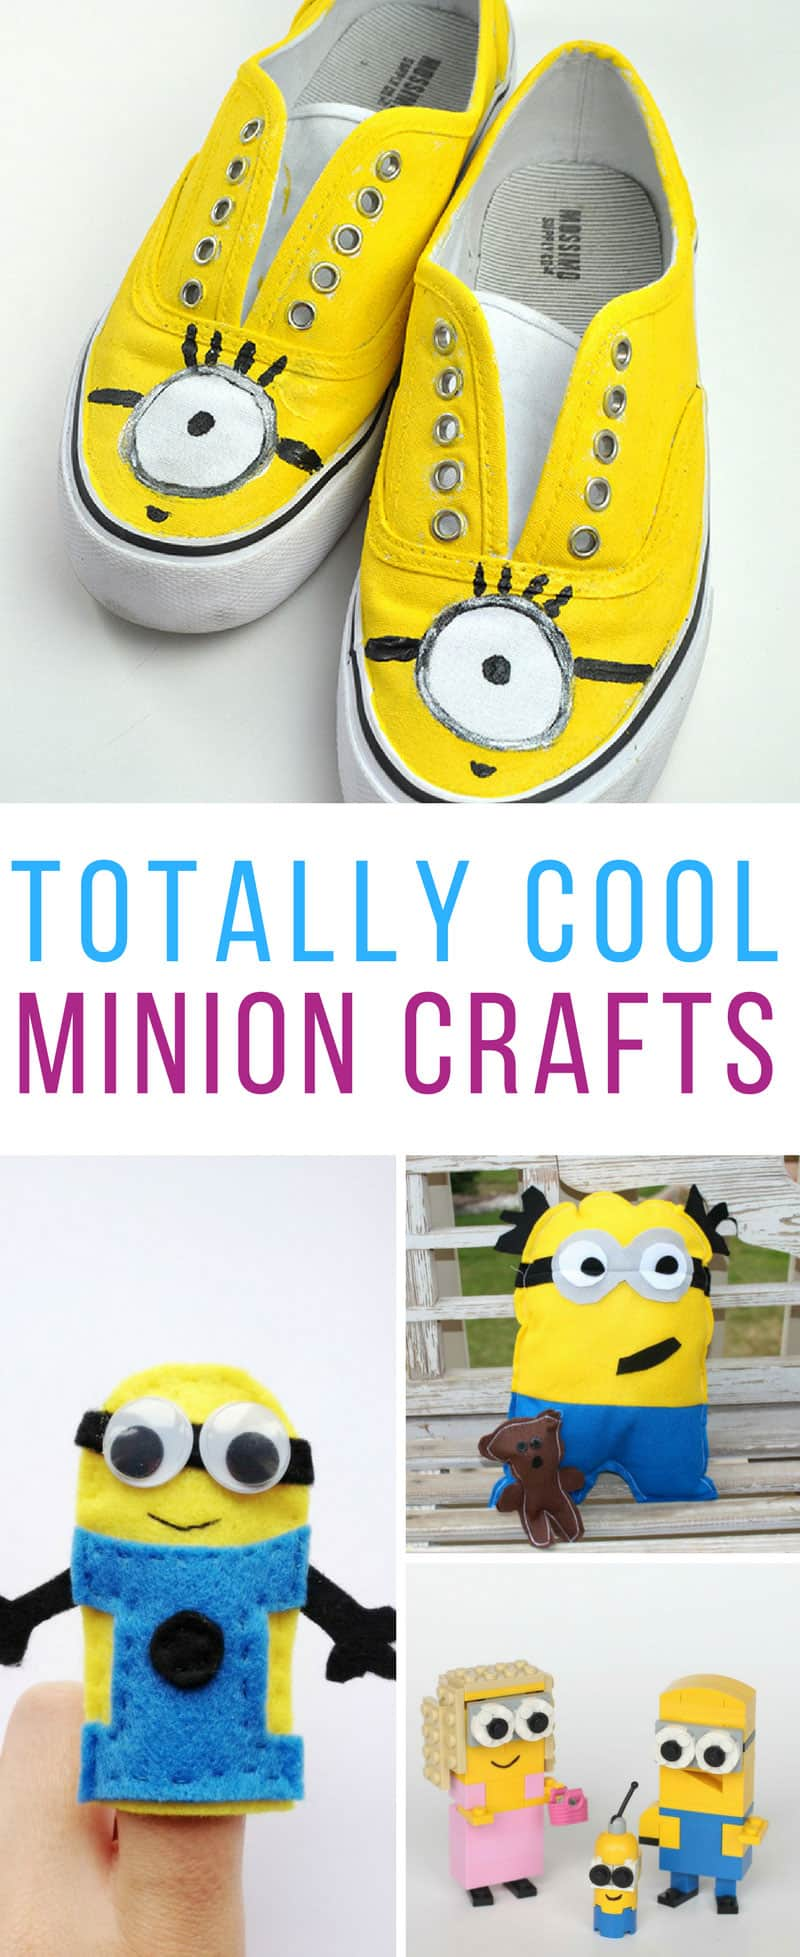 These Despicable Me Minion crafts are brilliant! Thanks for sharing!